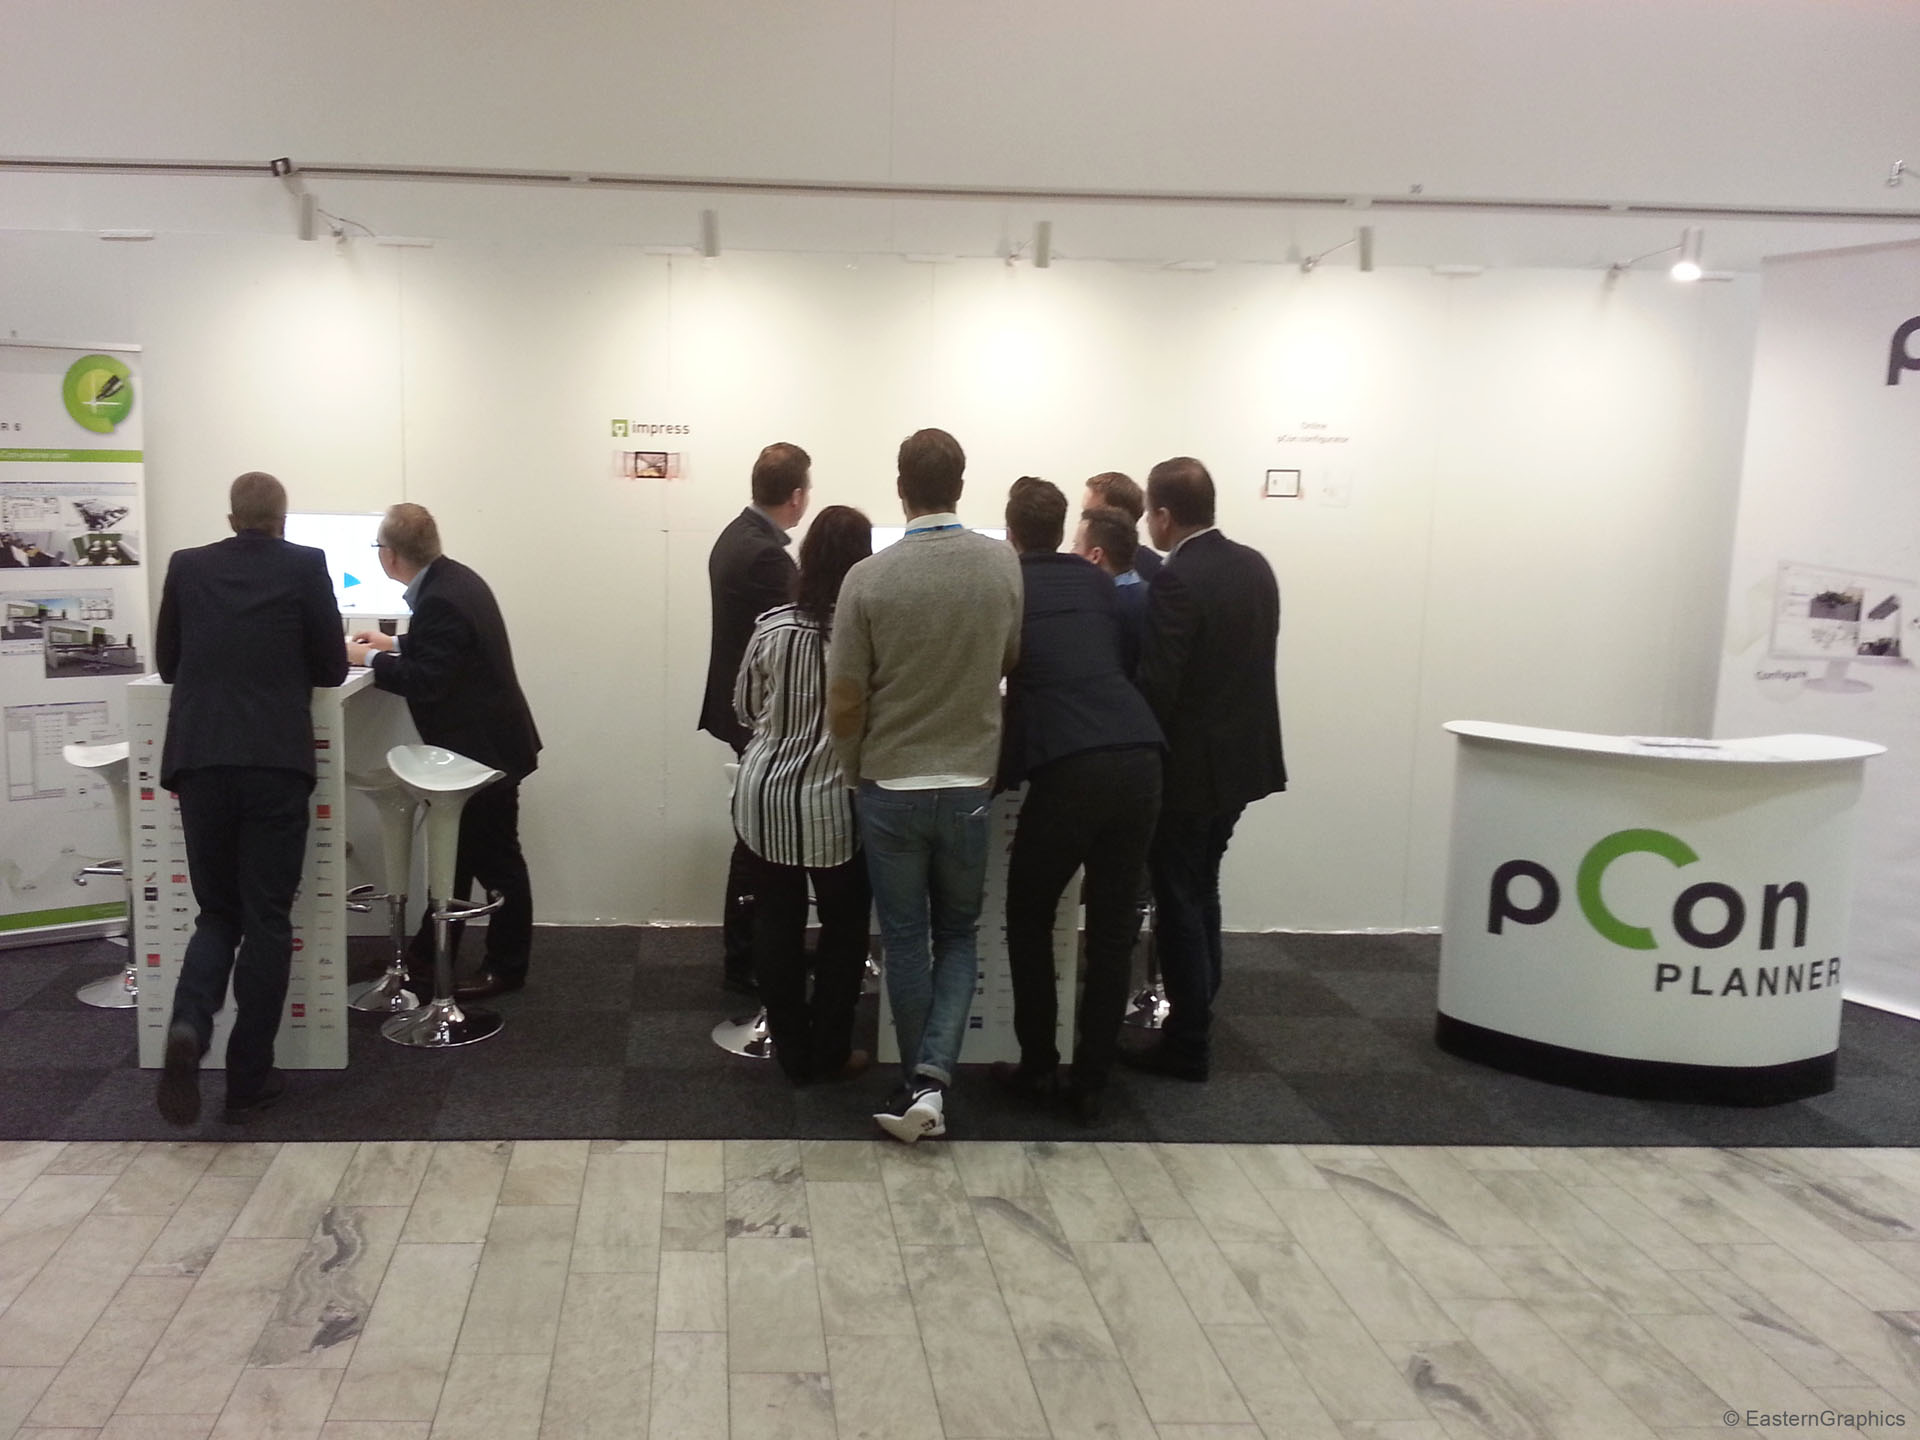 pCon stand at the Furniture & Light Fair 2015 - our solutions for product configuration and interior design were well received